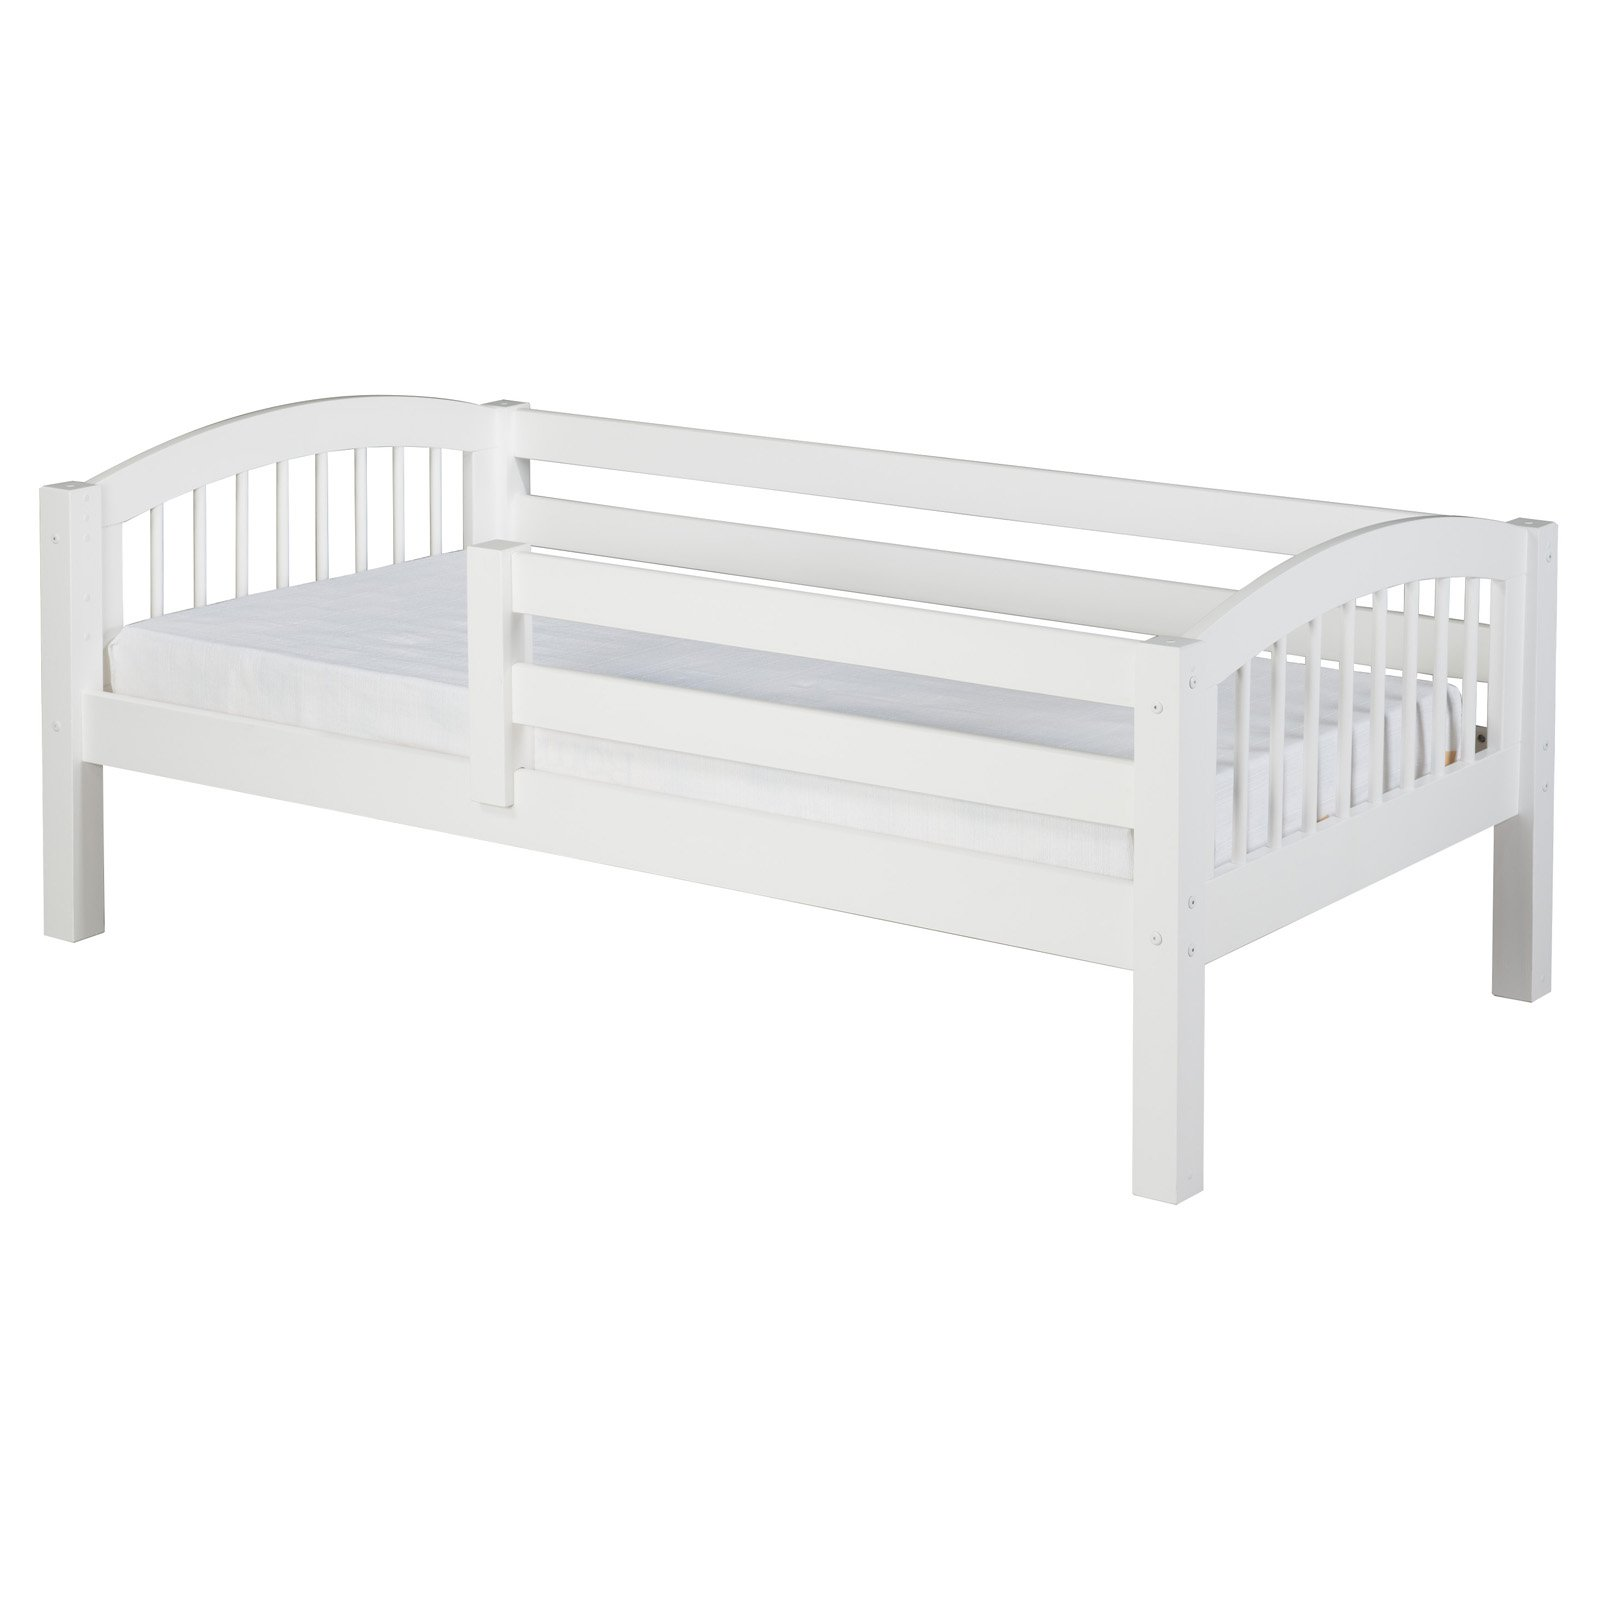 Camaflexi Twin Size Day Bed with Front Guard Rail & Twin Trundle Arch Spindle Headboard White Finish by EcoFlex Furniture